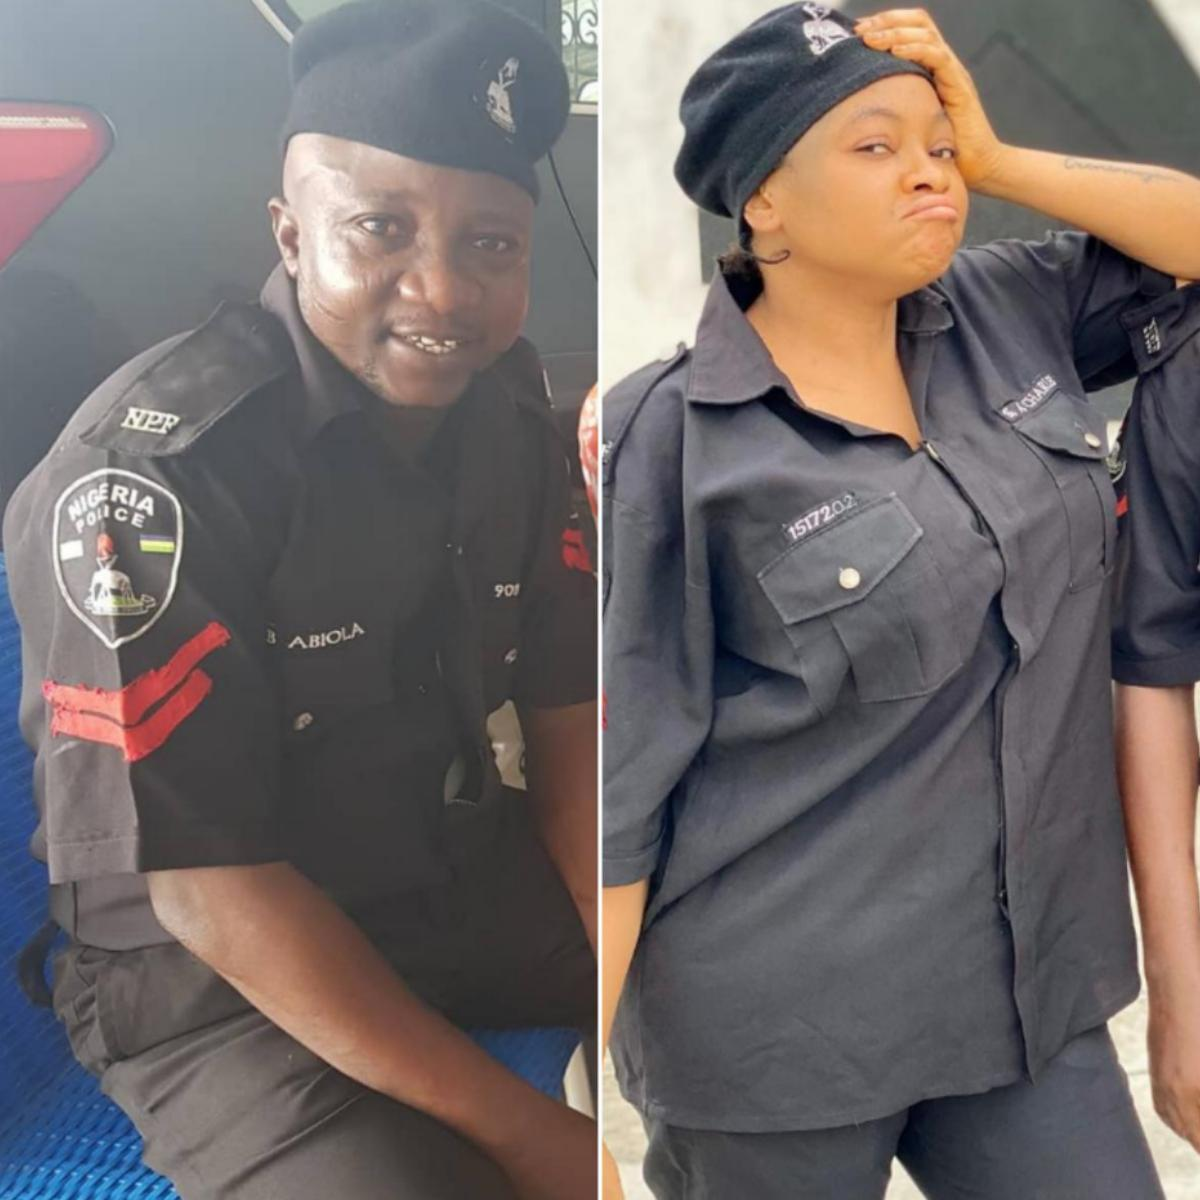 Funmi Awelewa And Olaniyi Afonja Police Uniforms Movie Set